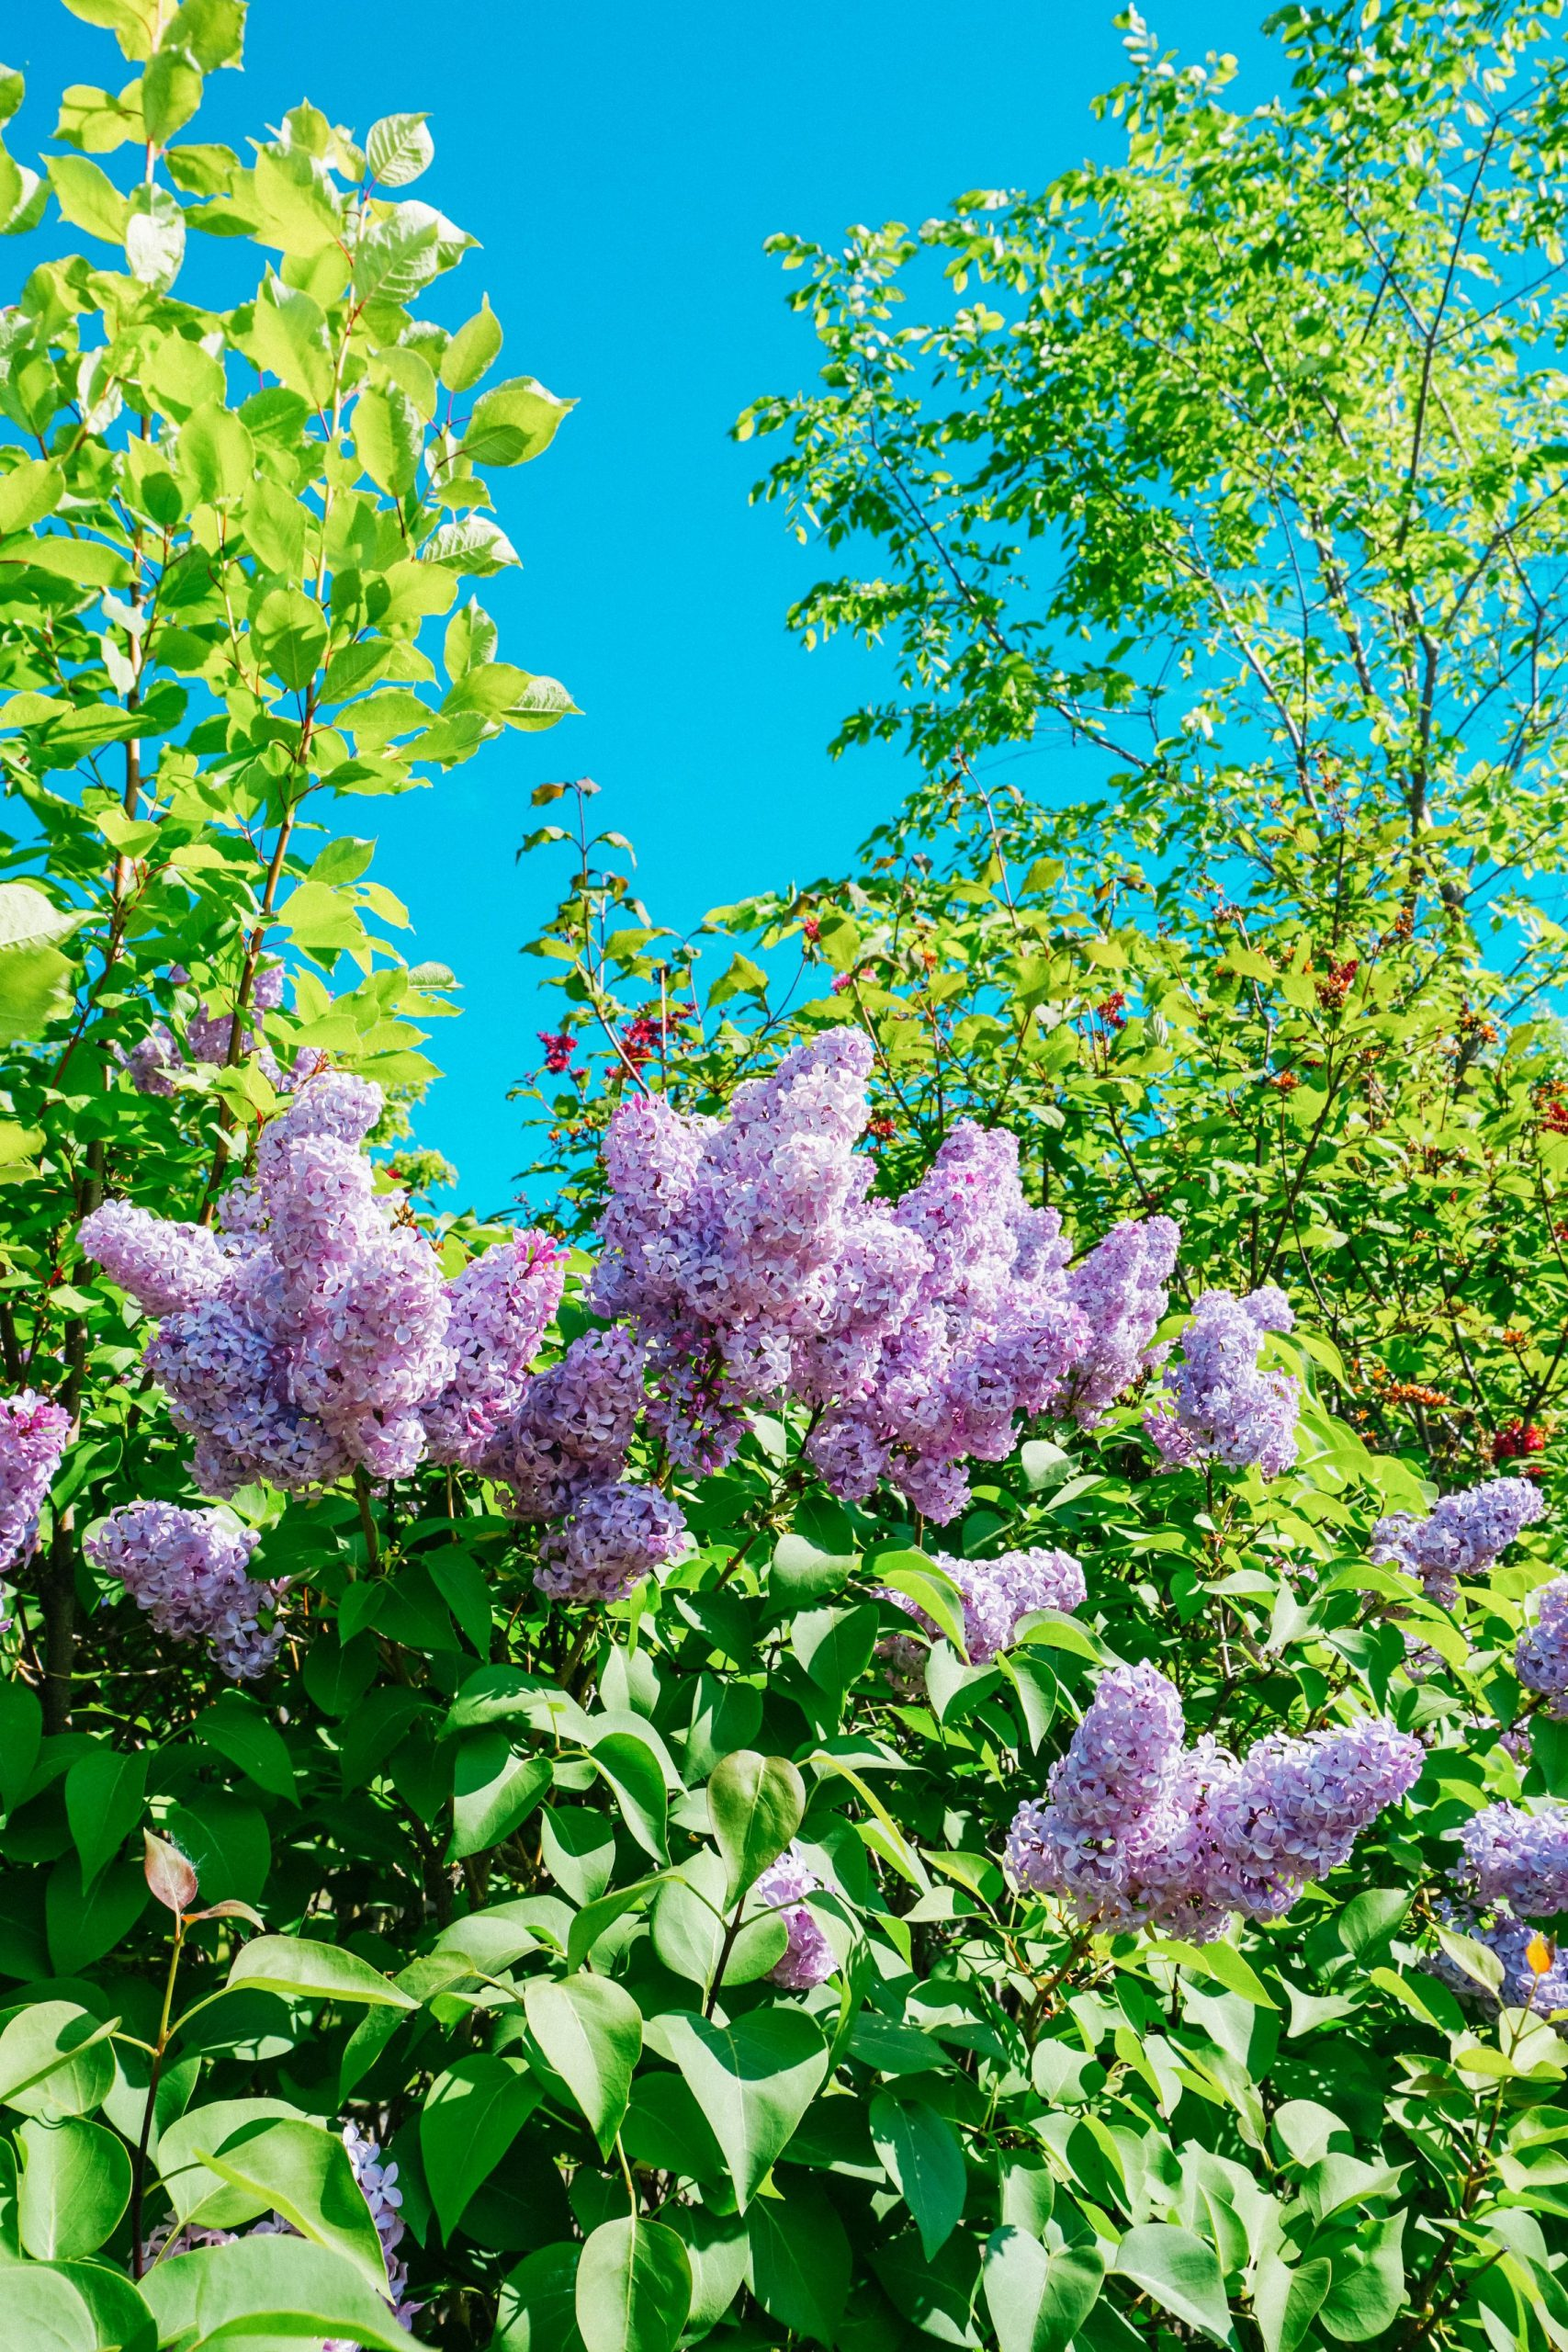 Enjoy blossoming flowers and plants at Georgeson Botanical Garden At University of Alaska.